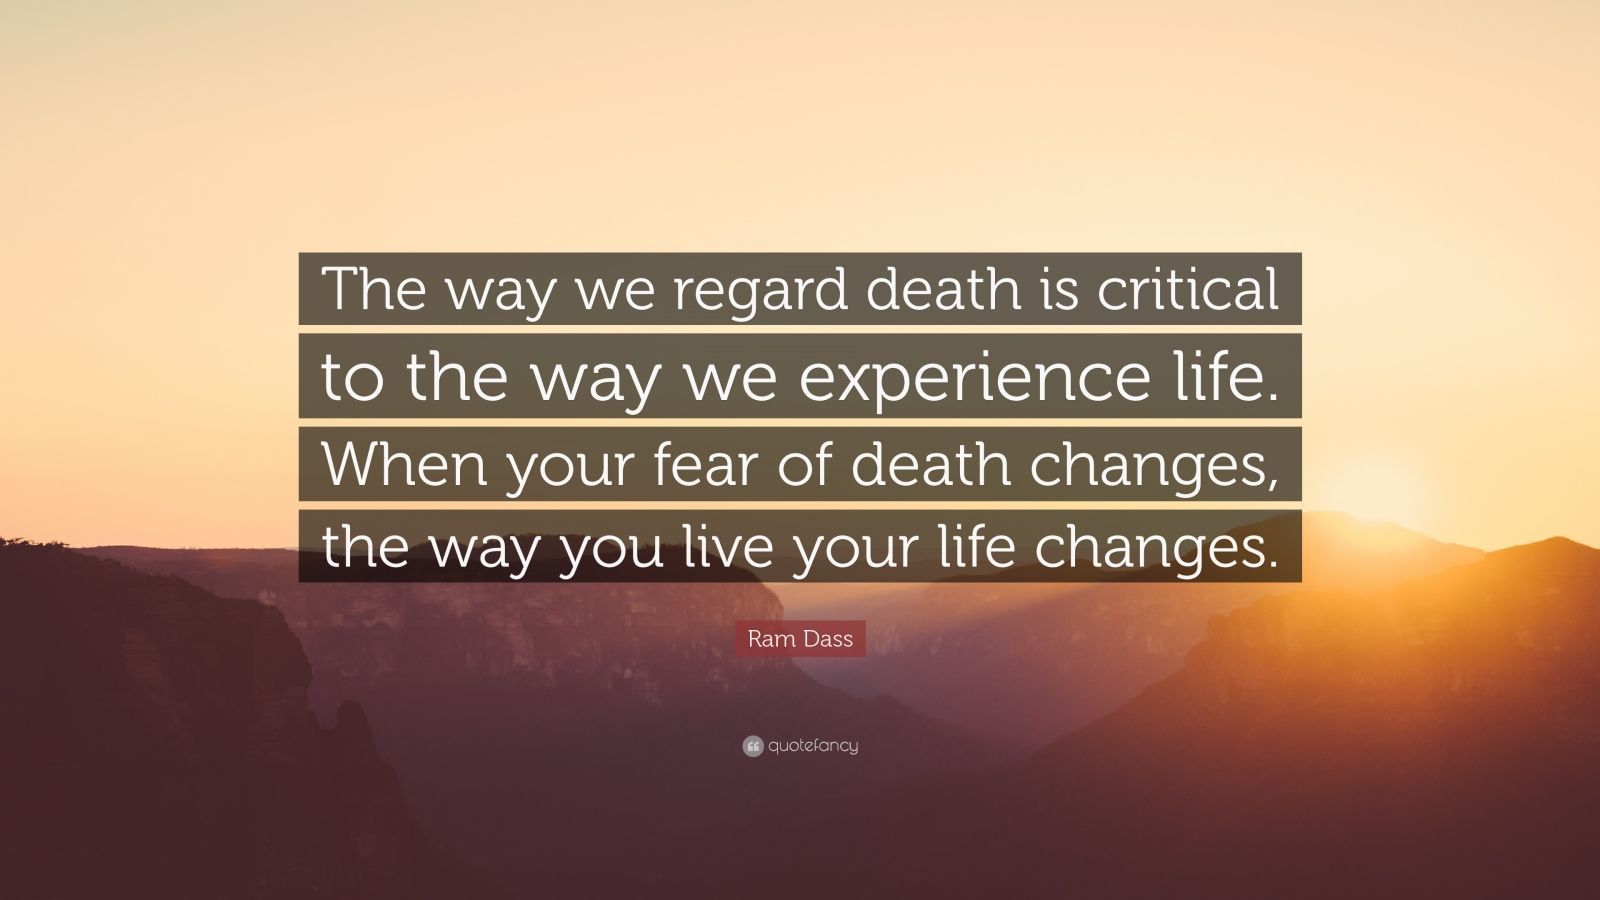 """Ram Dass Quote: """"The way we regard death is critical to the way we experience life. When your fear of death changes, the way you live your life changes."""""""